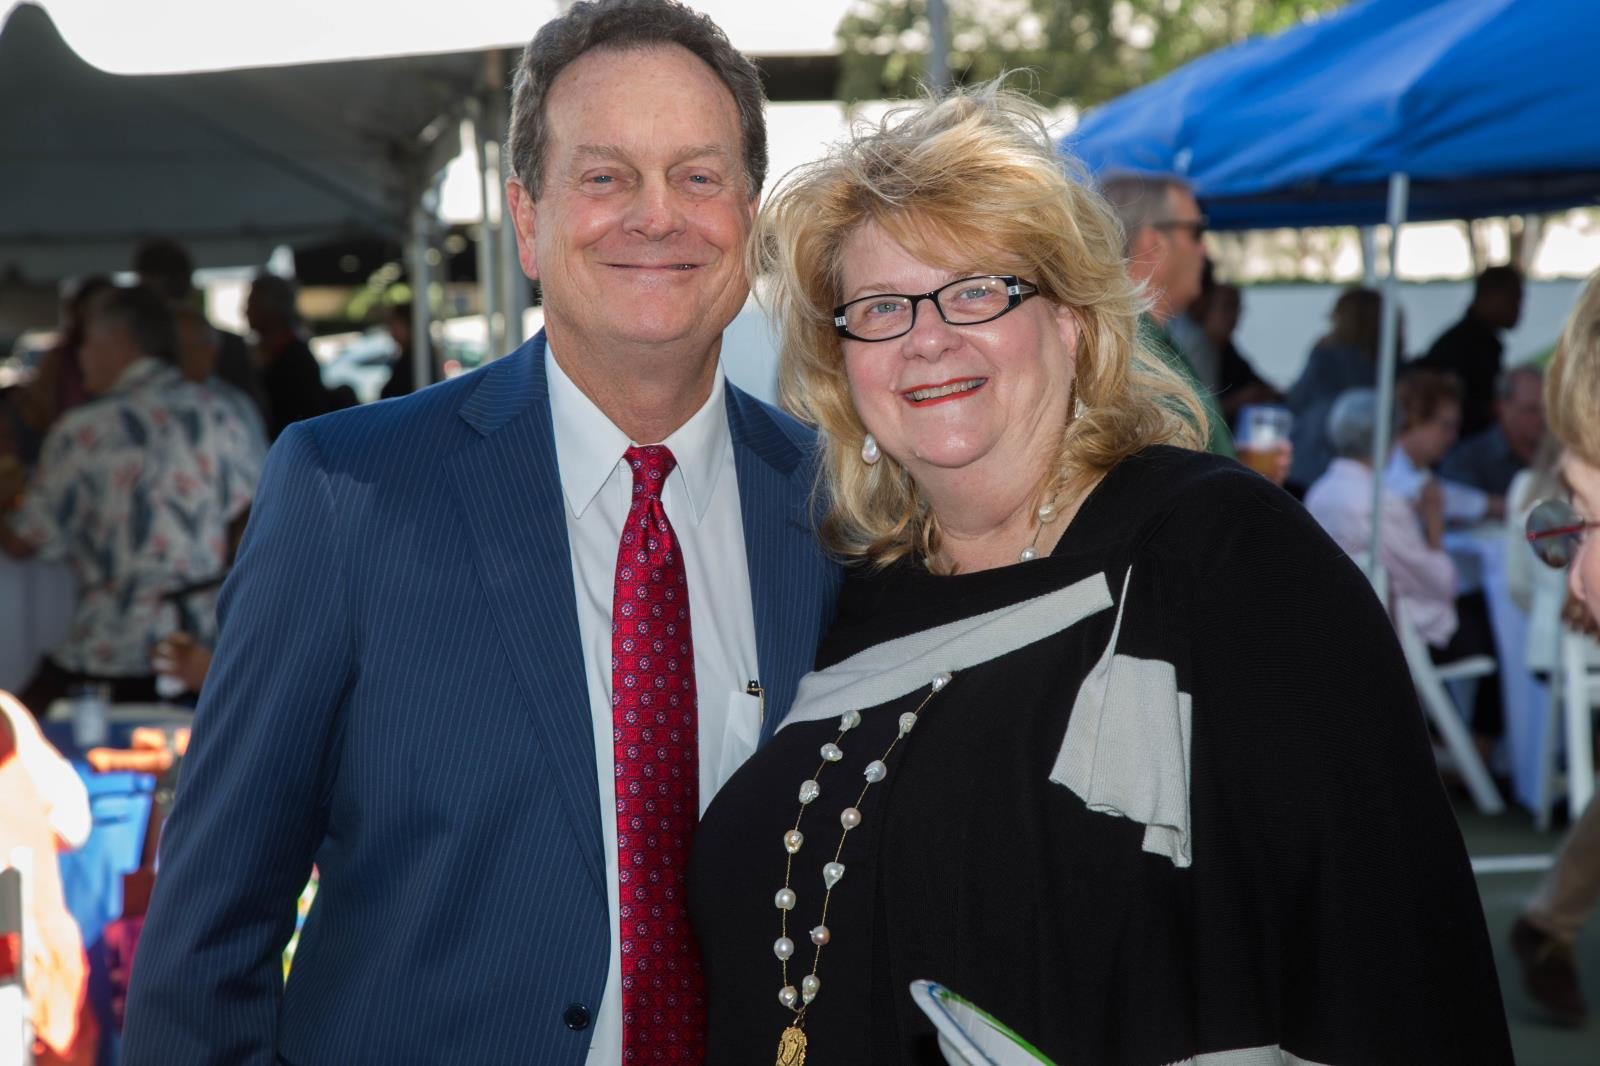 District 4 Commissioner Romney Rogers and wife Candace